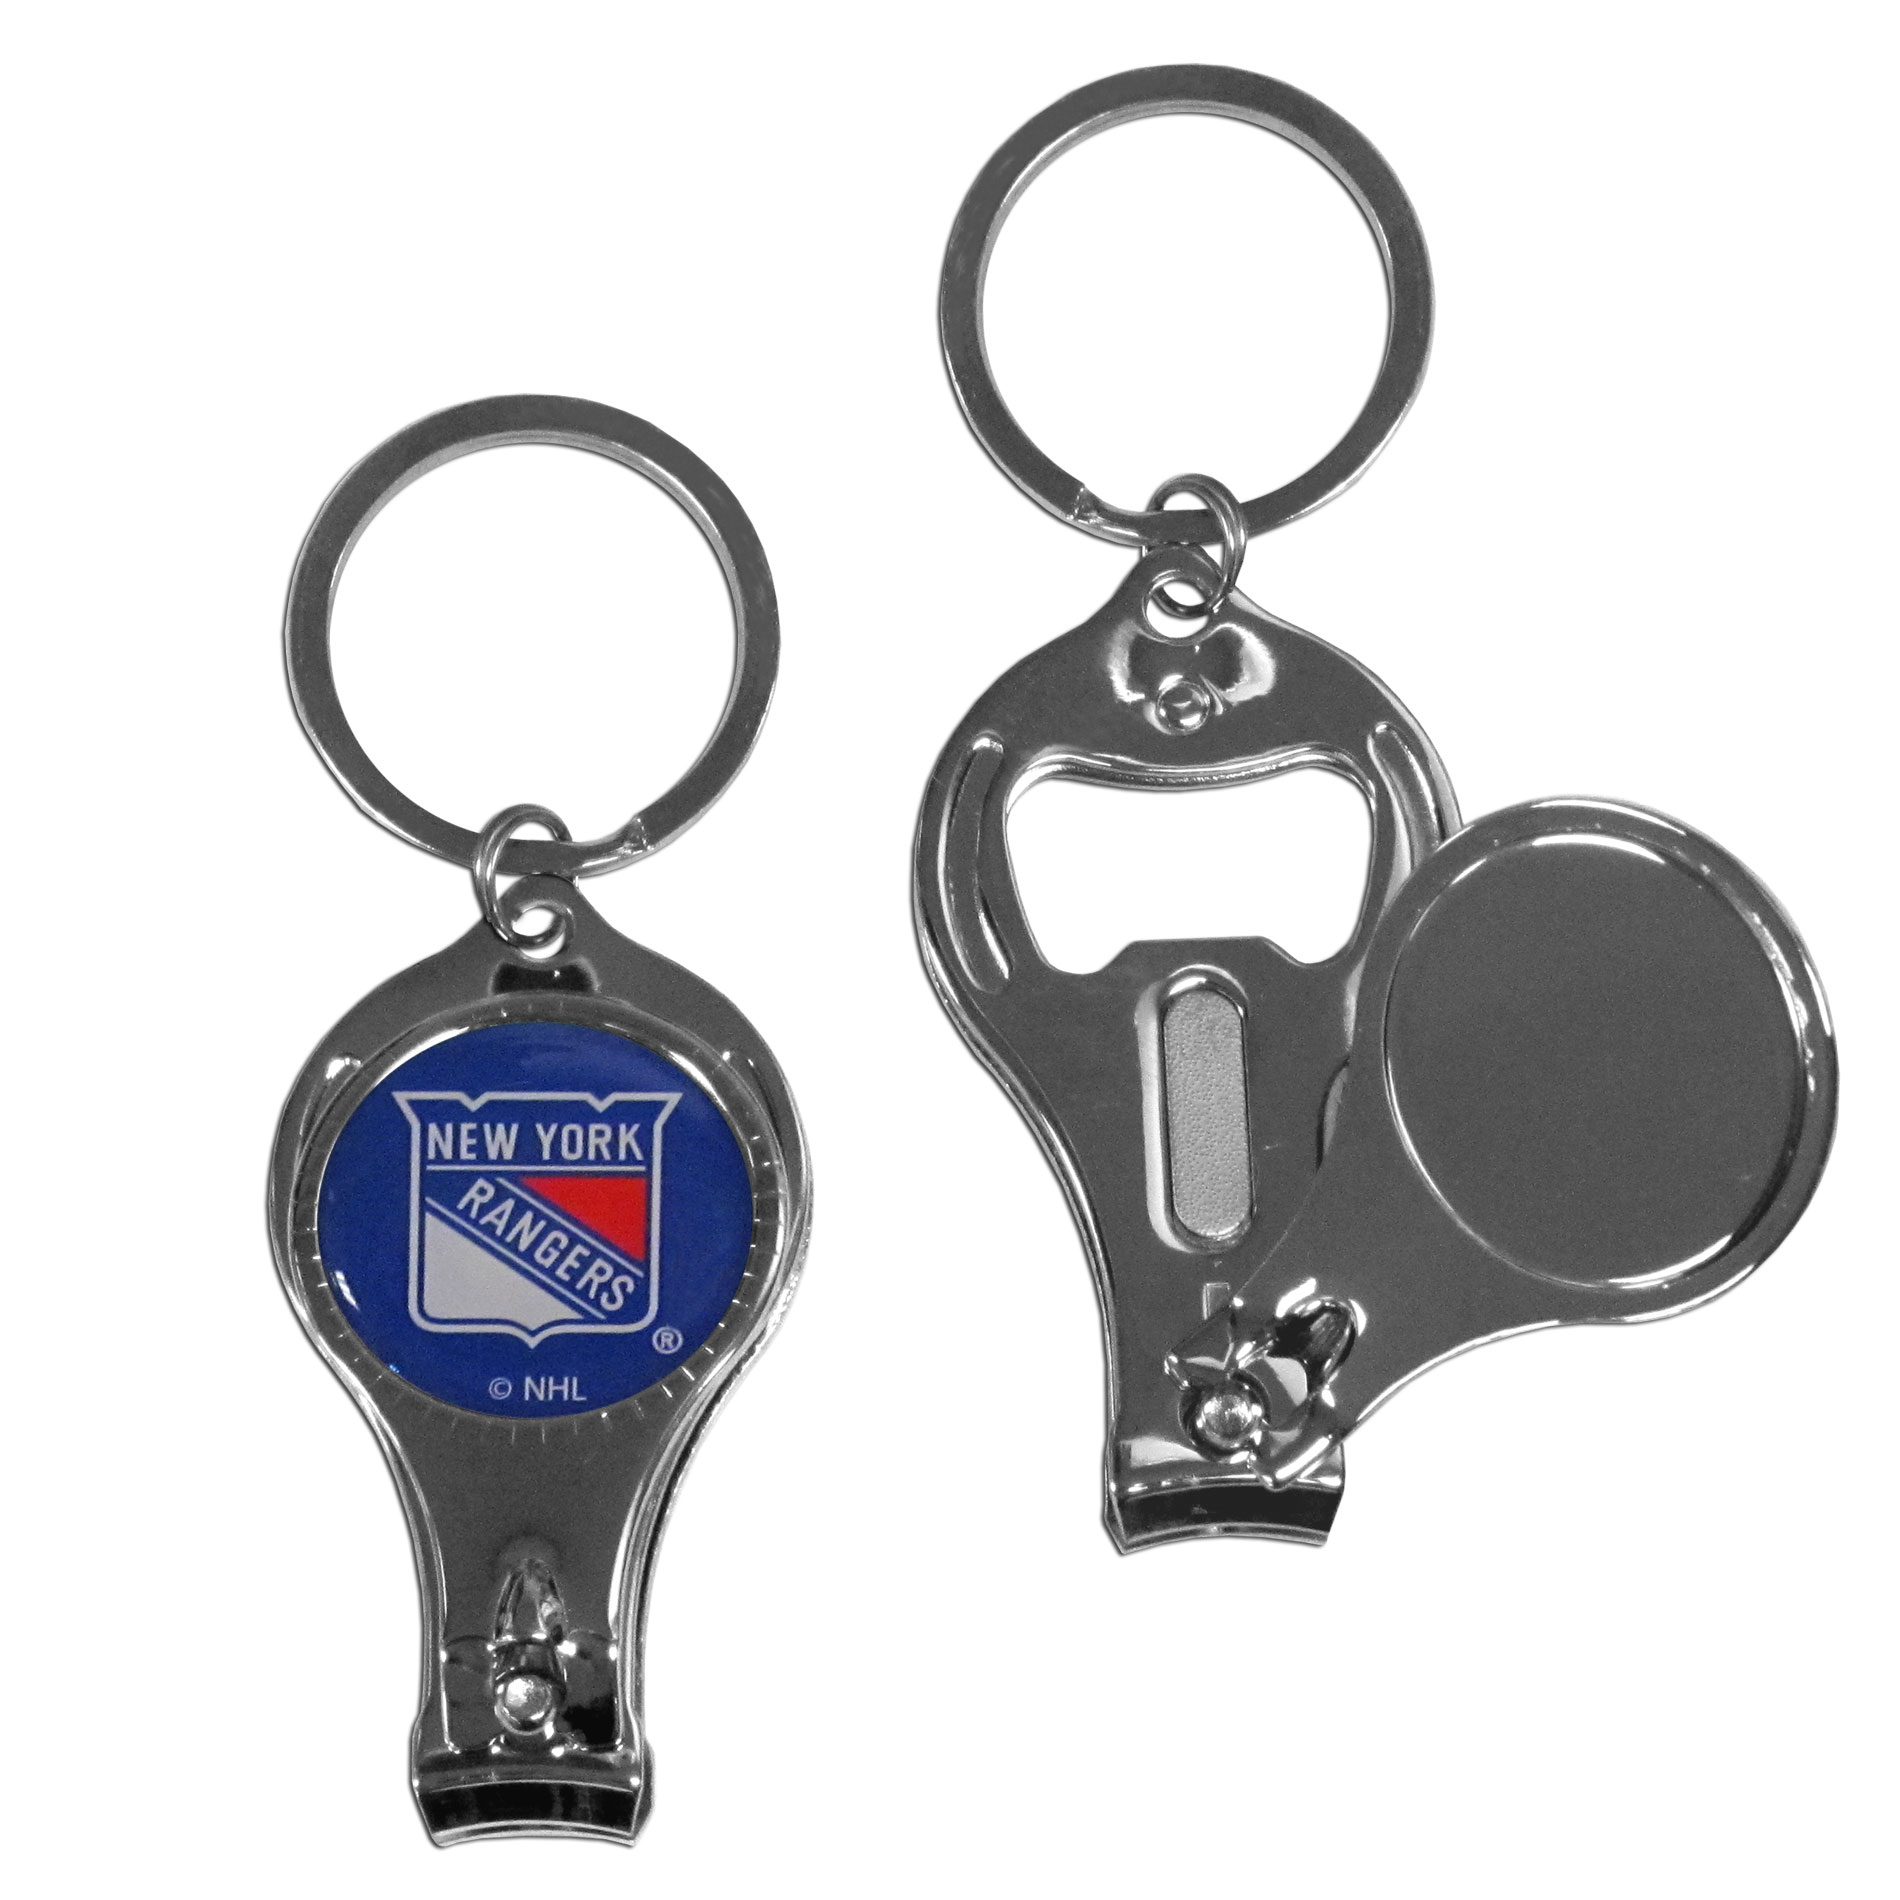 New York Rangers Nail Care Key Chain - This unique NHL New York Rangers Nail Care Key Chain has 3 great functions! The New York Rangers Nail Care Key Chain opens to become a nail clipper, when open you can access the nail file pad plus the New York Rangers key chain also has a bottle opener. This New York Rangers Nail Care Key Chain features a New York Rangers domed logo. Thank you for visiting CrazedOutSports